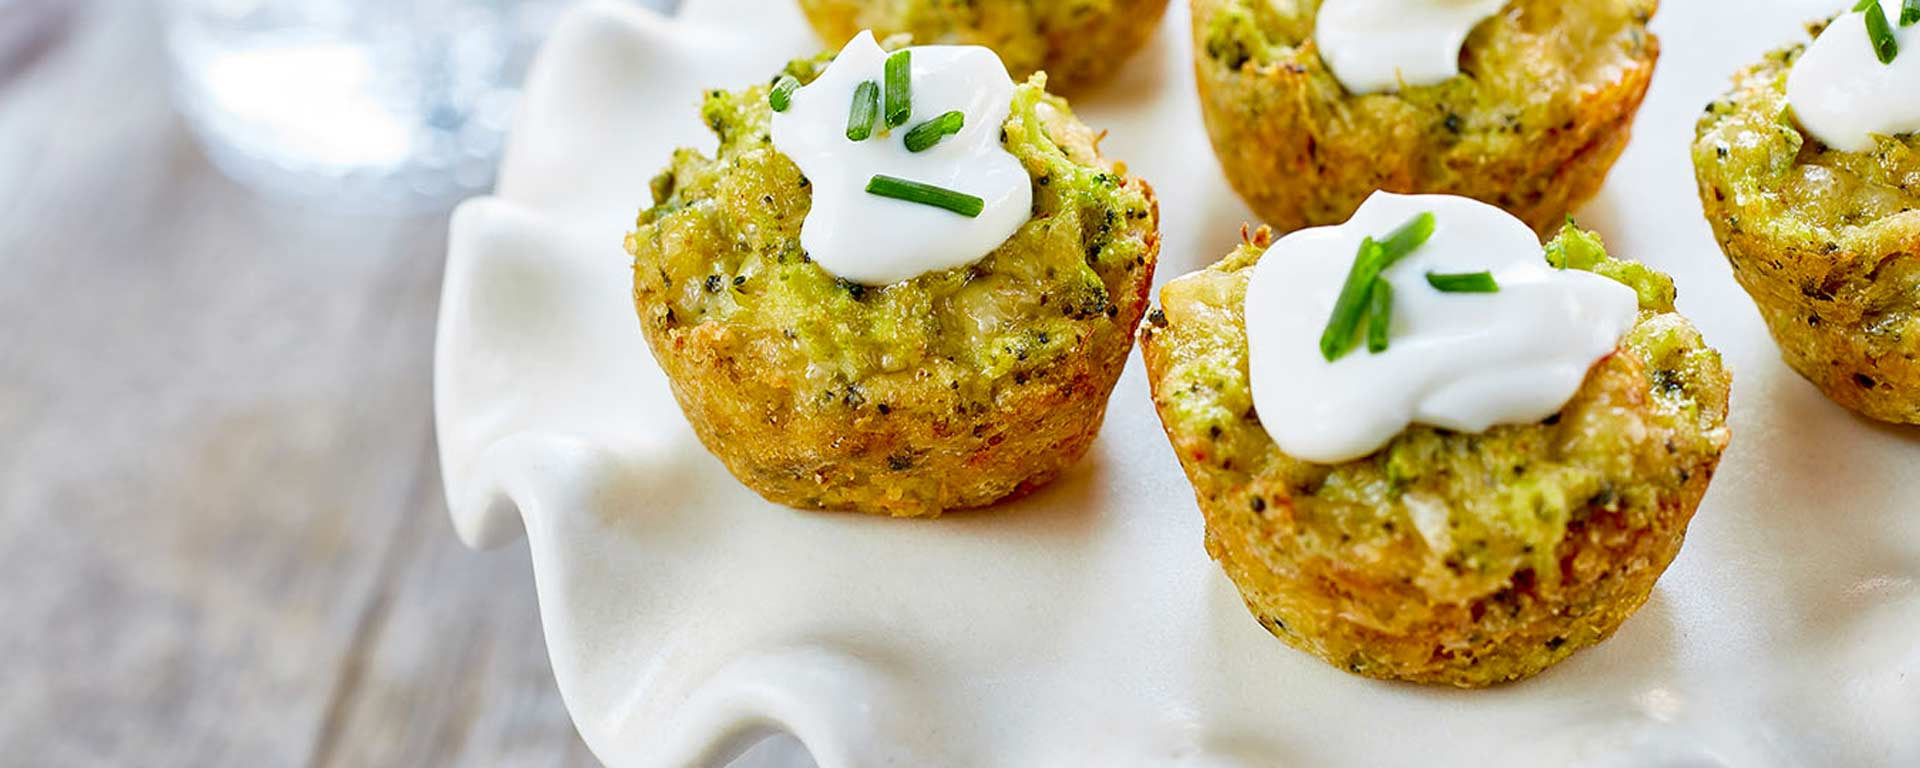 Photo for - Broccoli Cheddar Bites